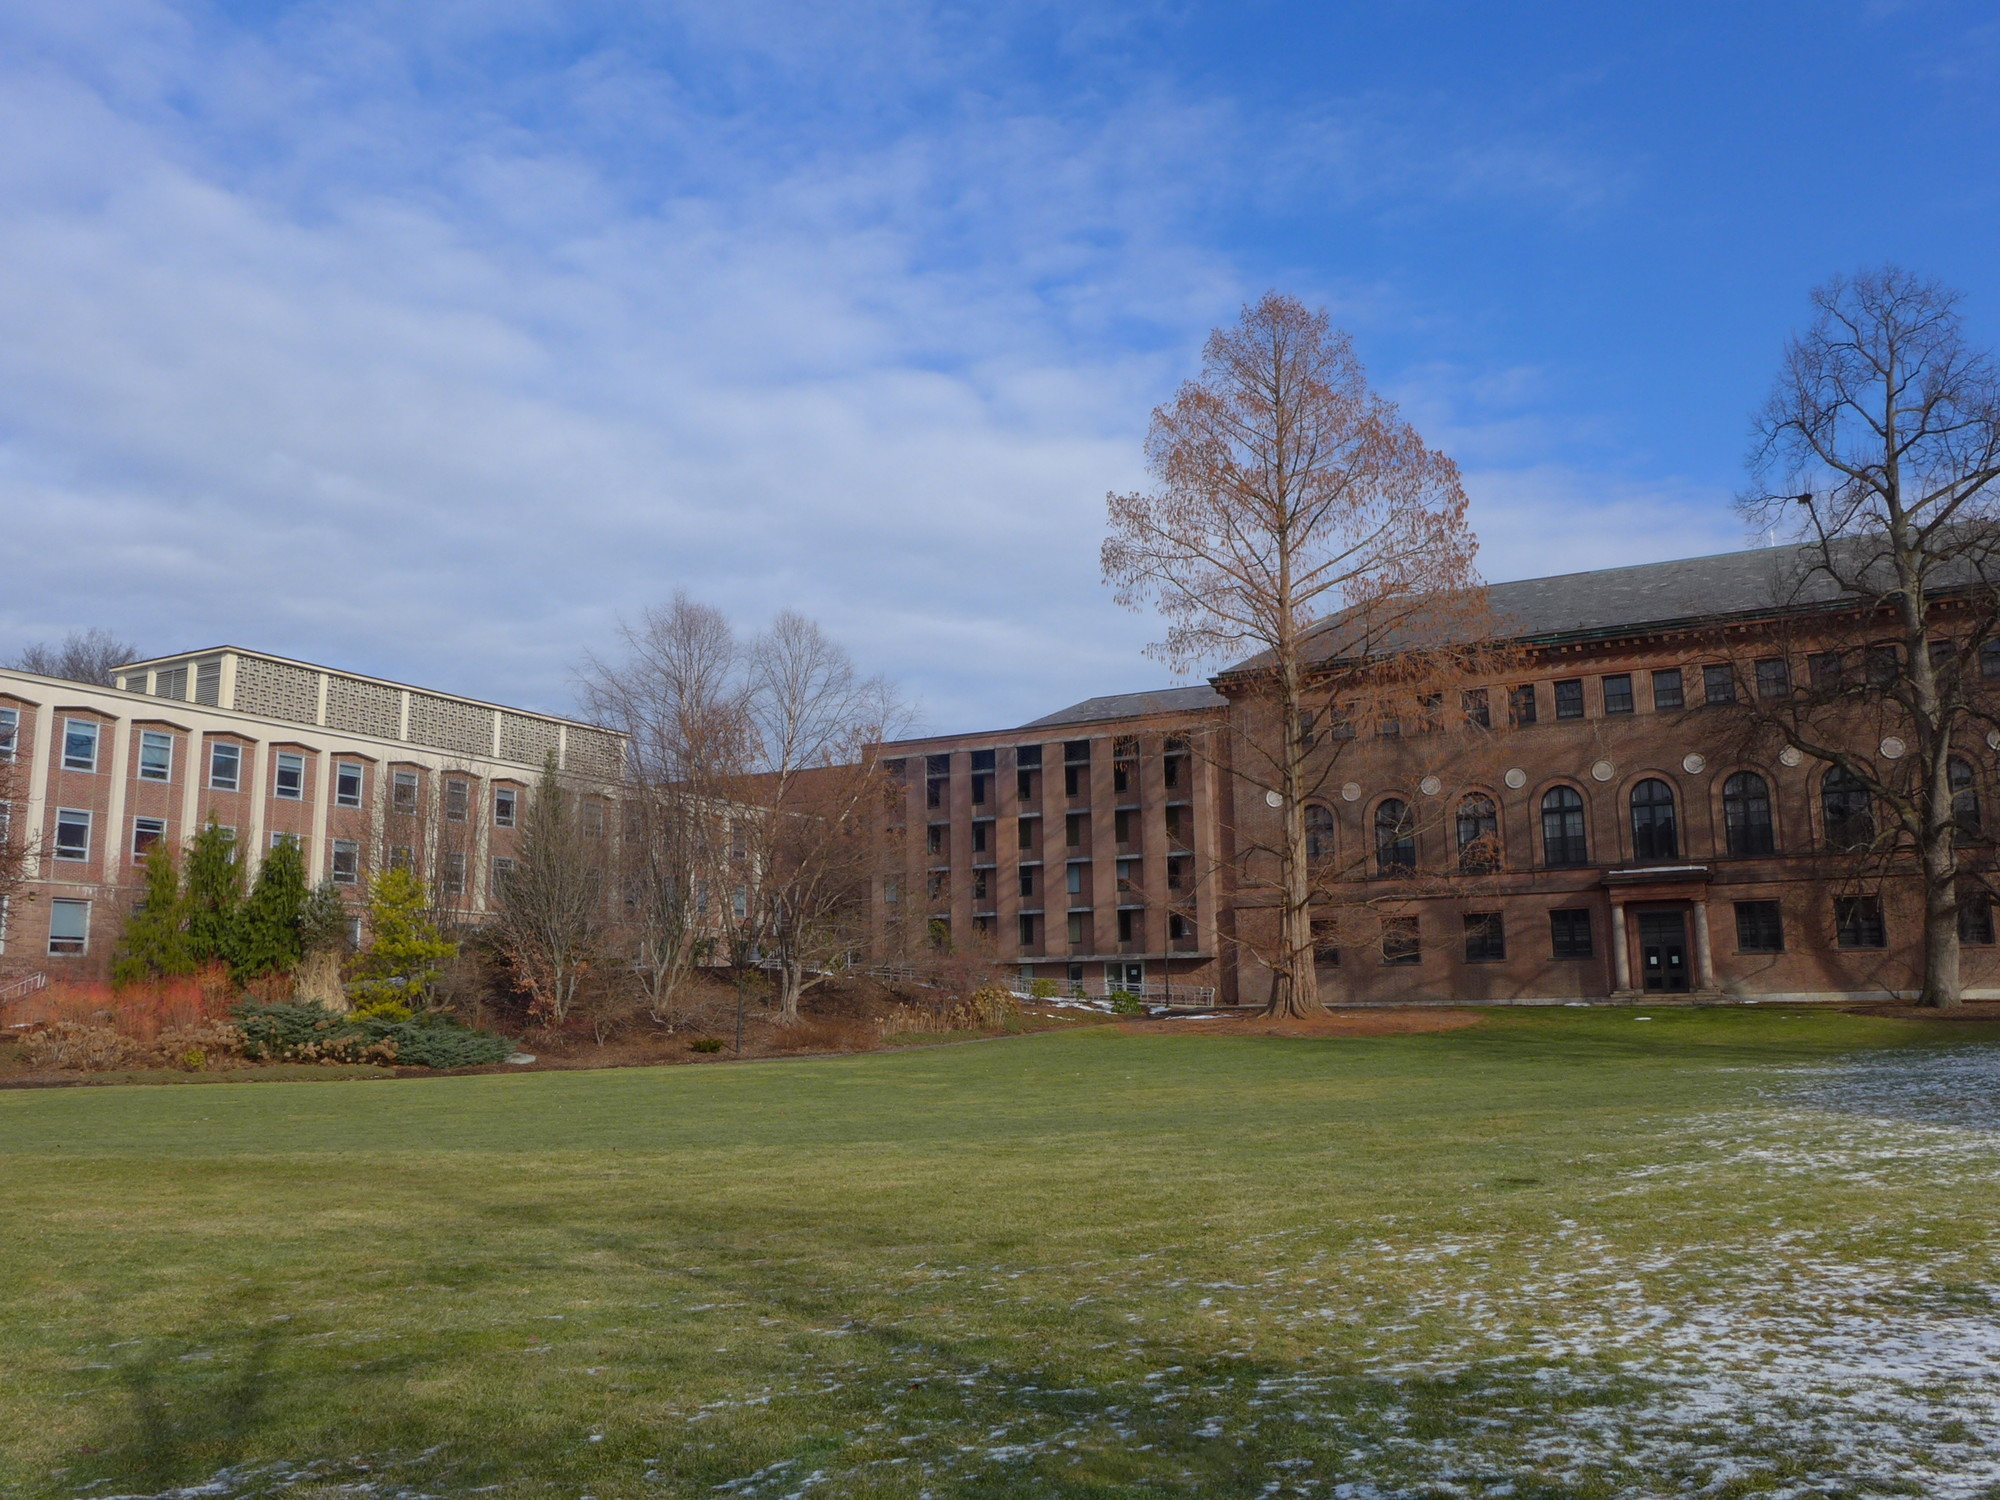 Maya Lin and Shepley Bulfinch to Redesign Smith College's Neilson Library, Neilson Library. Image © Flickr CC user chipmunk_1